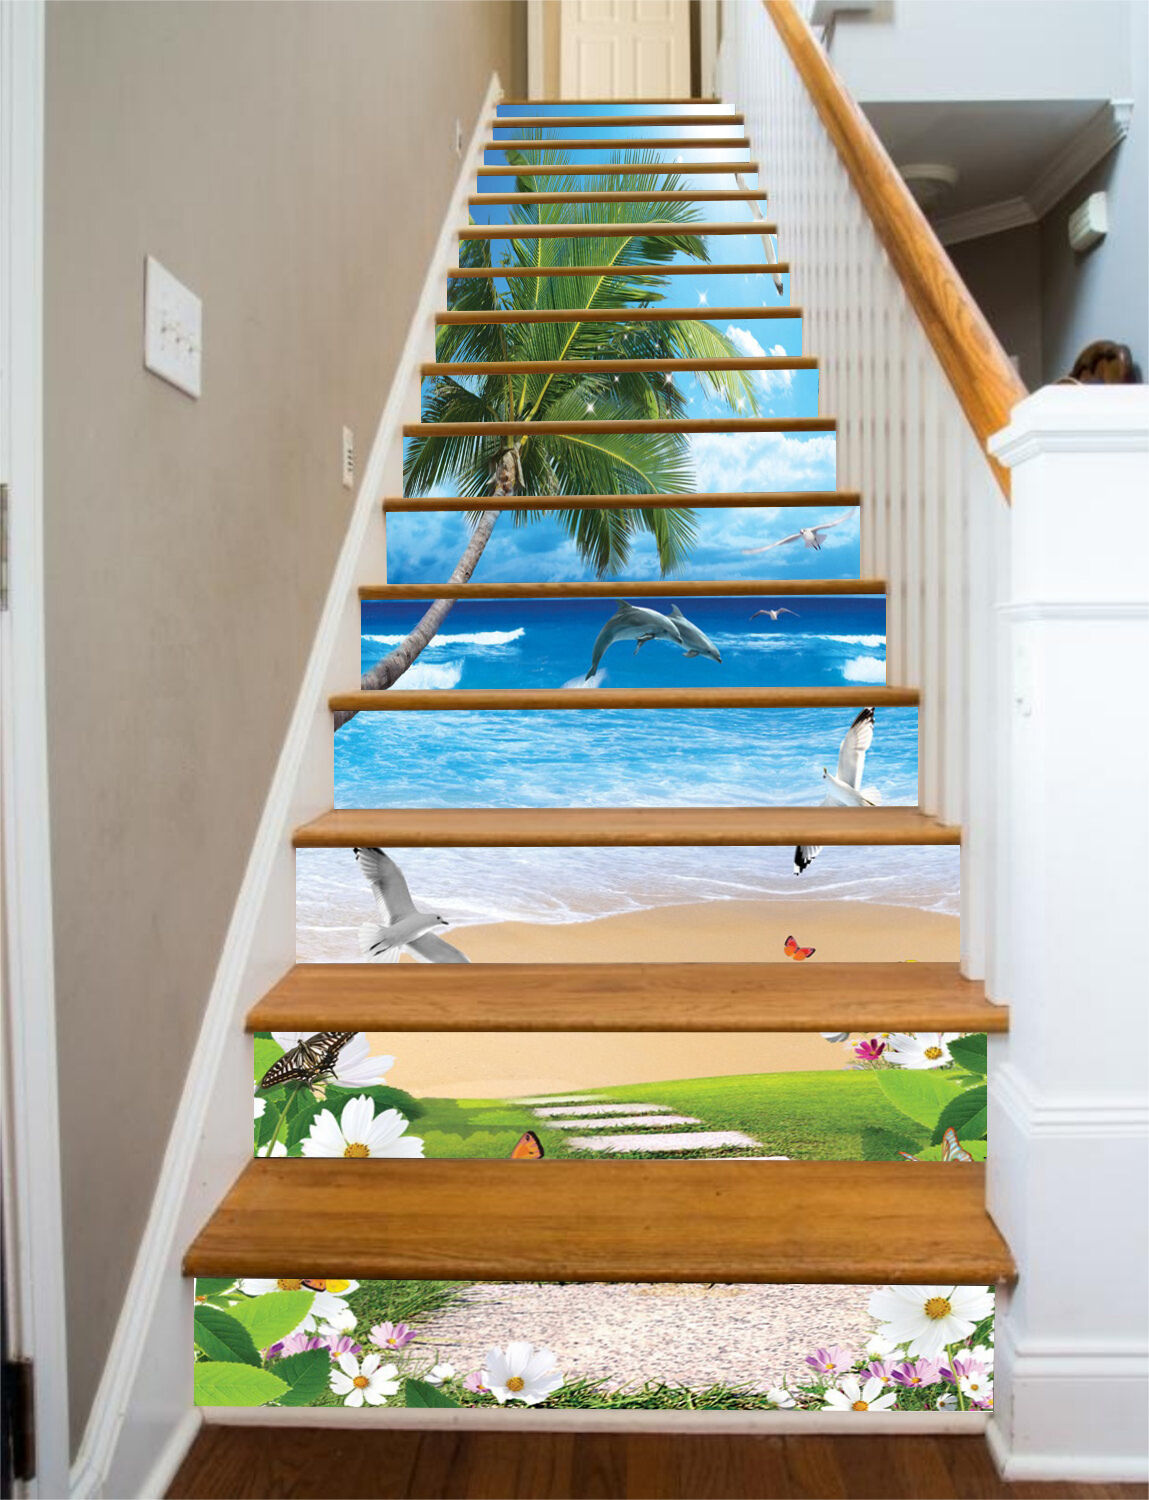 3D Seabirds Beach Stair Risers Decoration Photo Mural Vinyl Decal Wallpaper CA